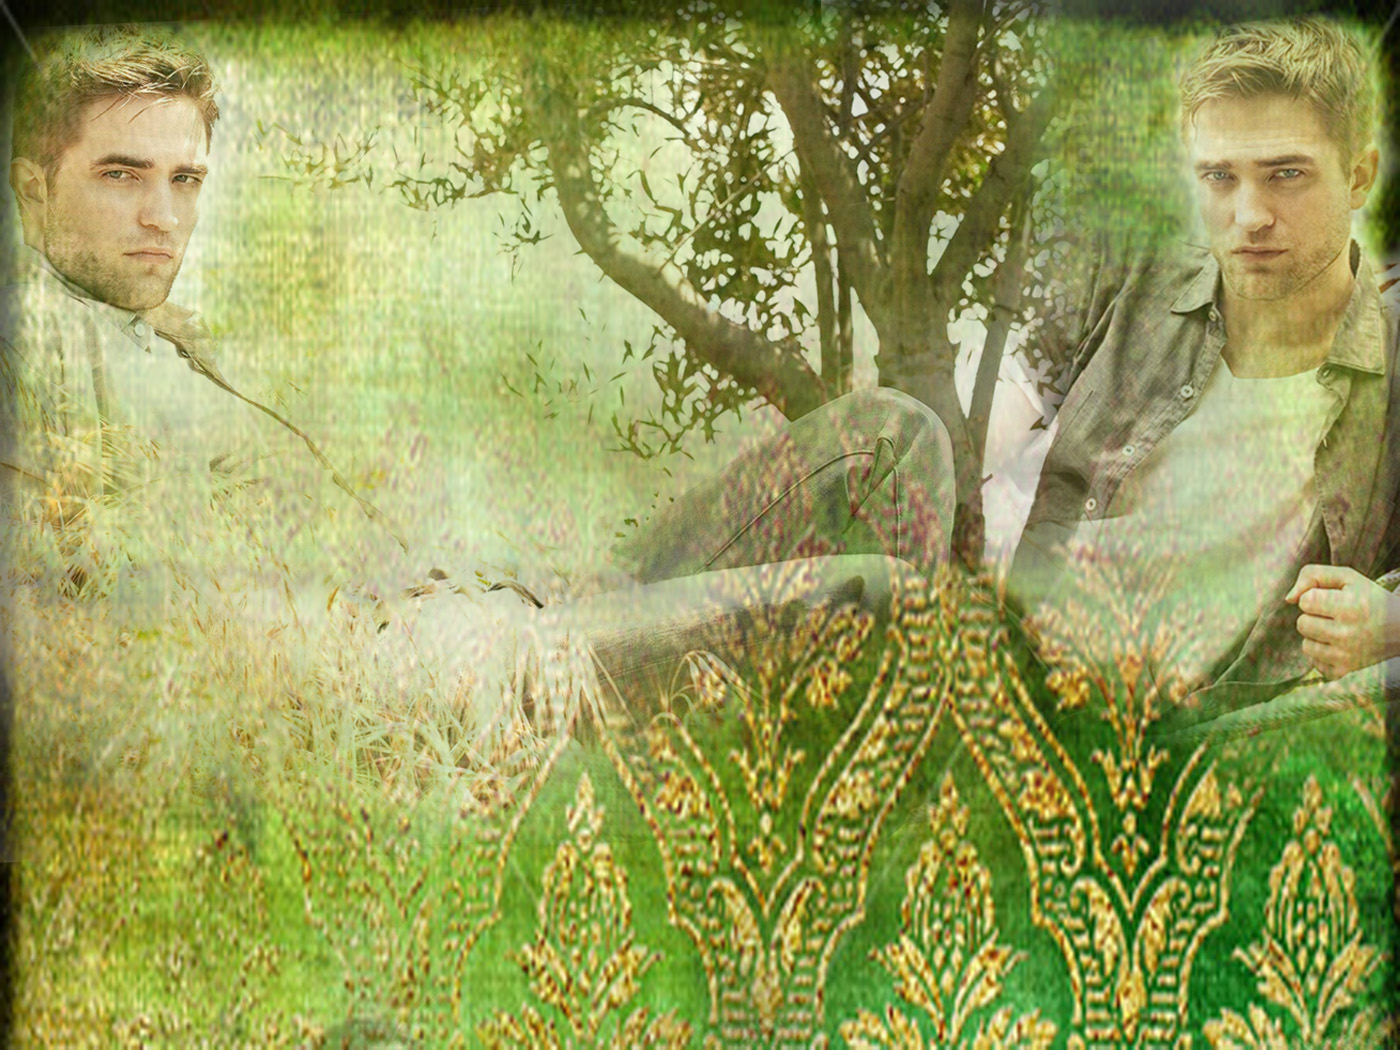 http://4.bp.blogspot.com/_1P_vYY2pers/TCAf1M0tYZI/AAAAAAAABJk/sylWrgMoQl4/s1600/stock-pao-green-vintage-background-with-golden-patterns-20856820.jpg